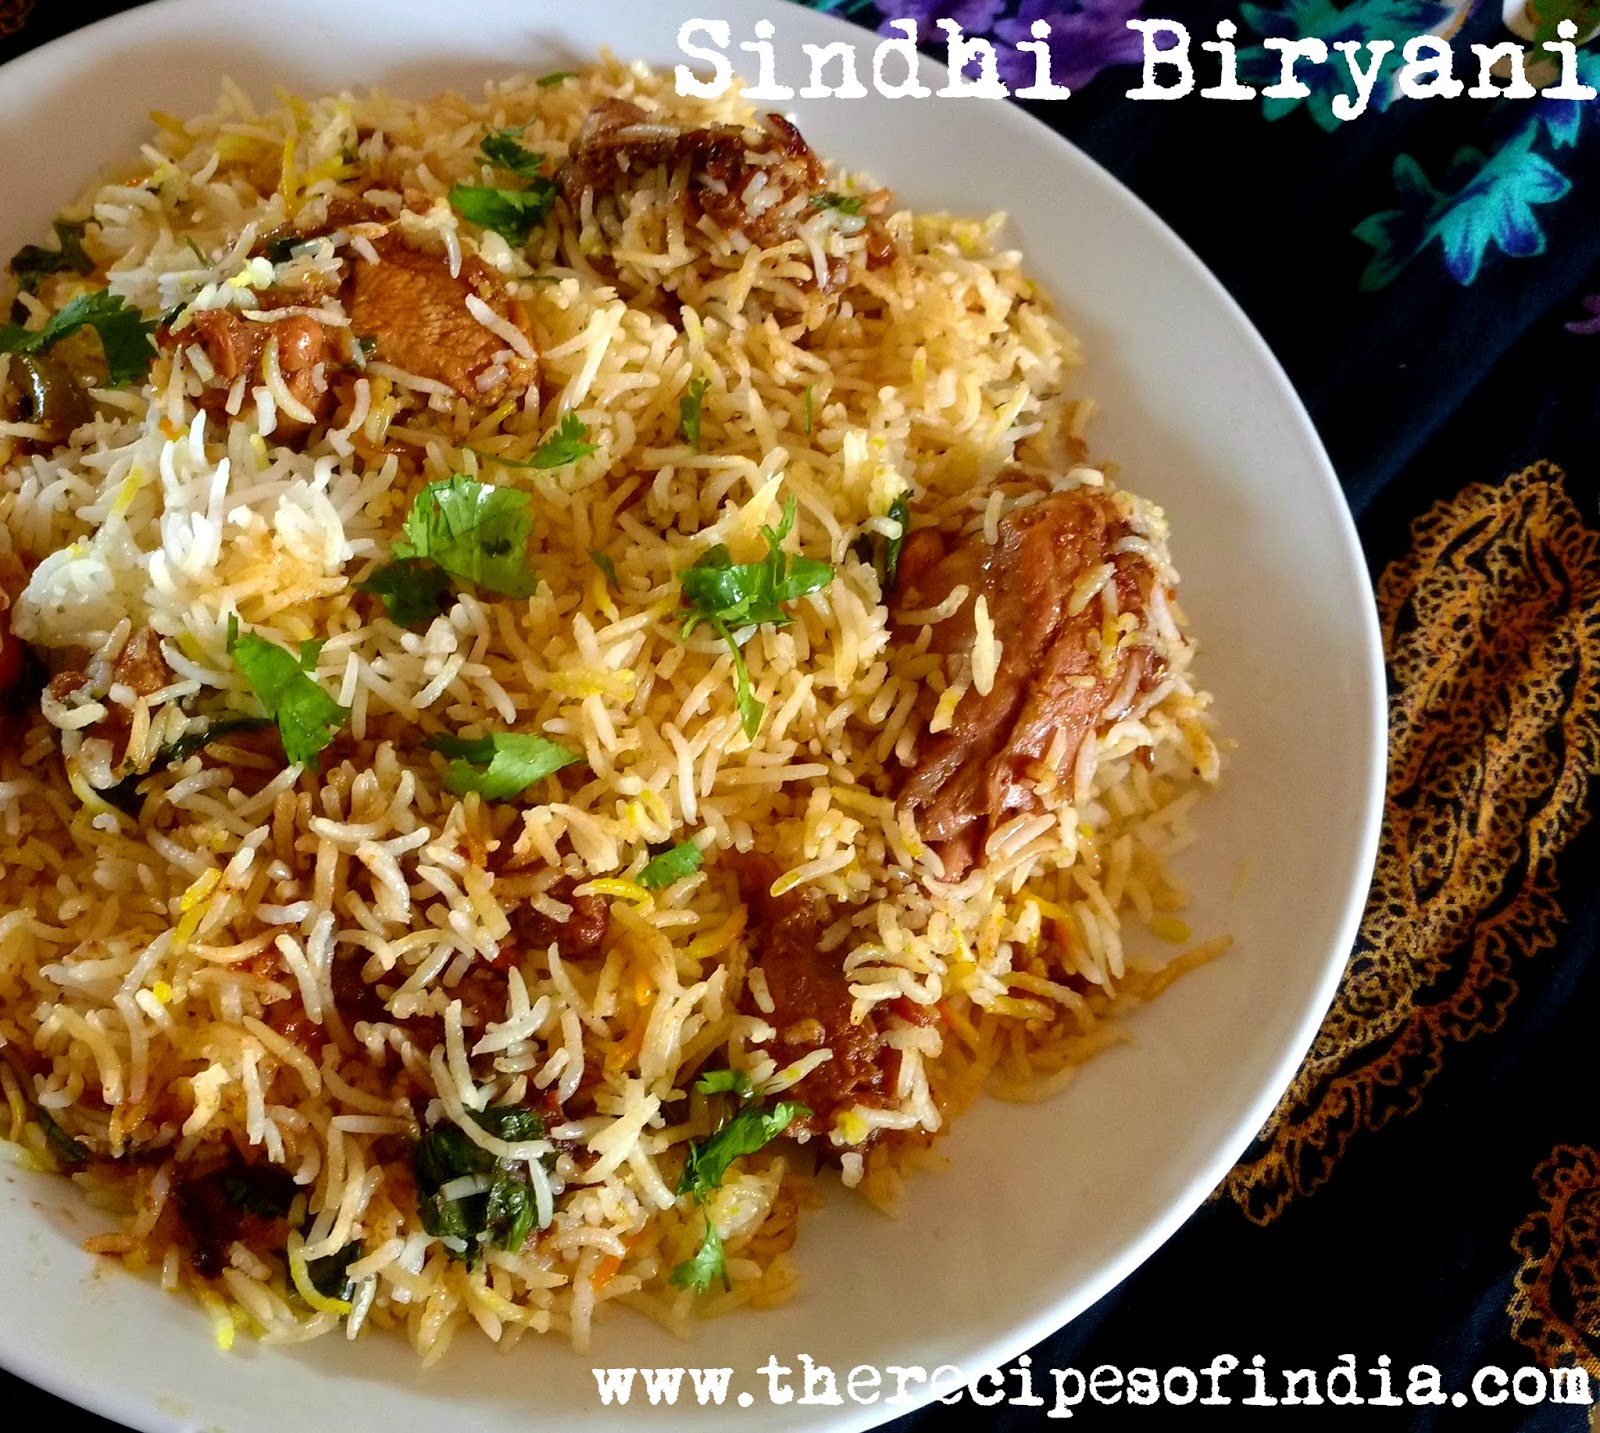 Indian food recipes indian recipes desi food desi recipes sindhi biryani is a flavorful biryani consisting of the aroma and flavor of fresh mint leaves coriander leaves green chillies and tomatoes forumfinder Image collections